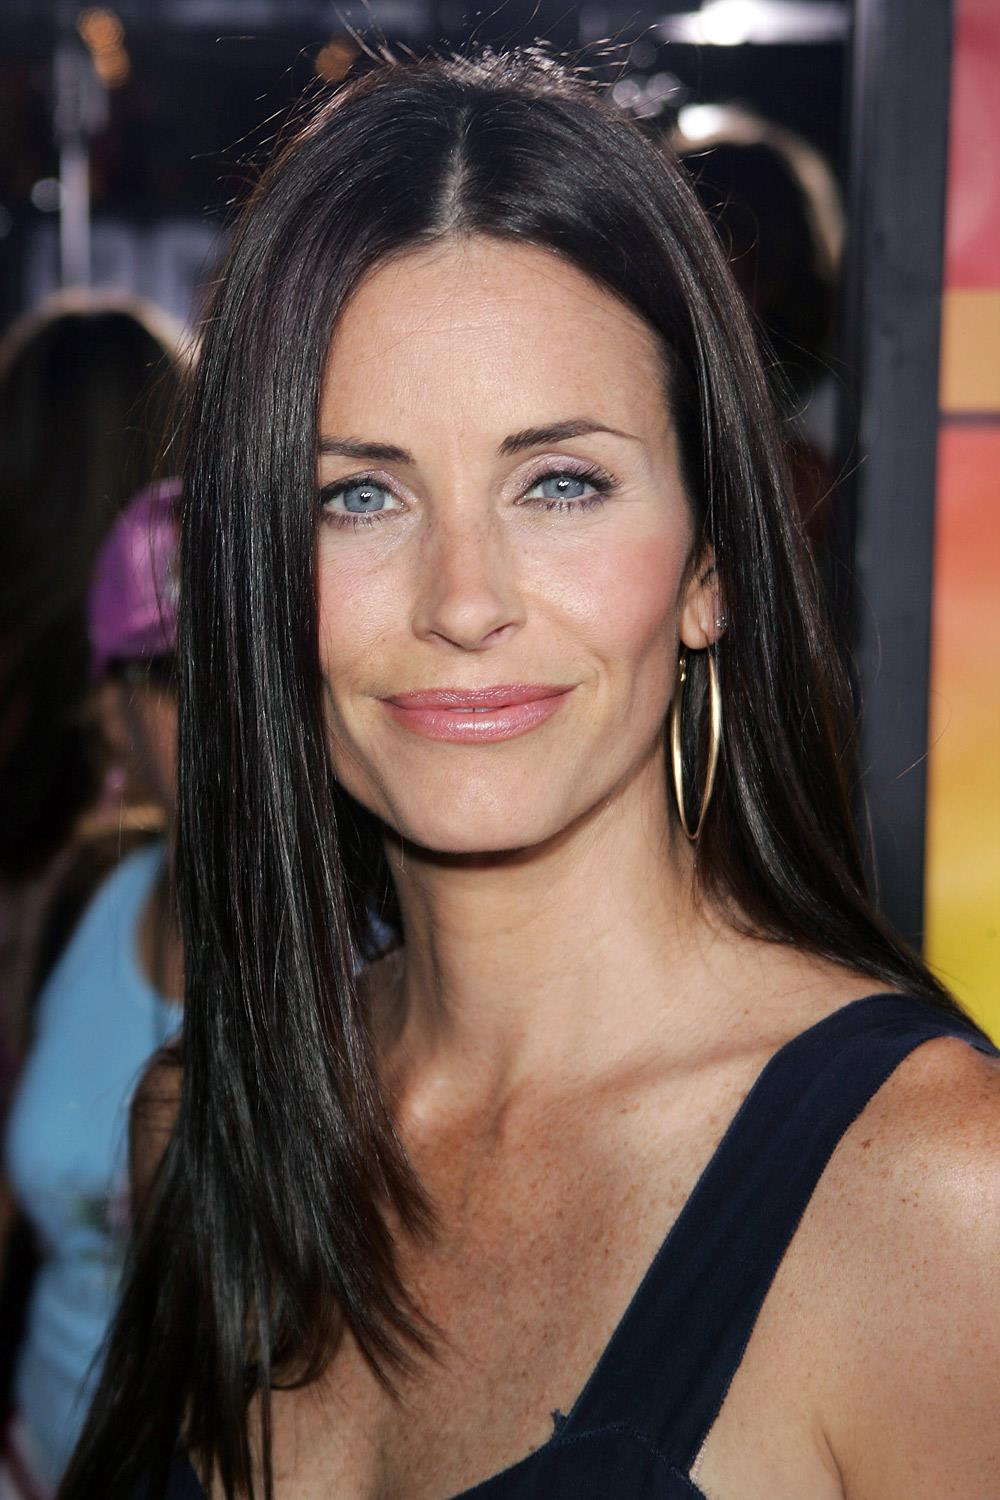 famosas operadas courtney cox. Courtney Cox antes